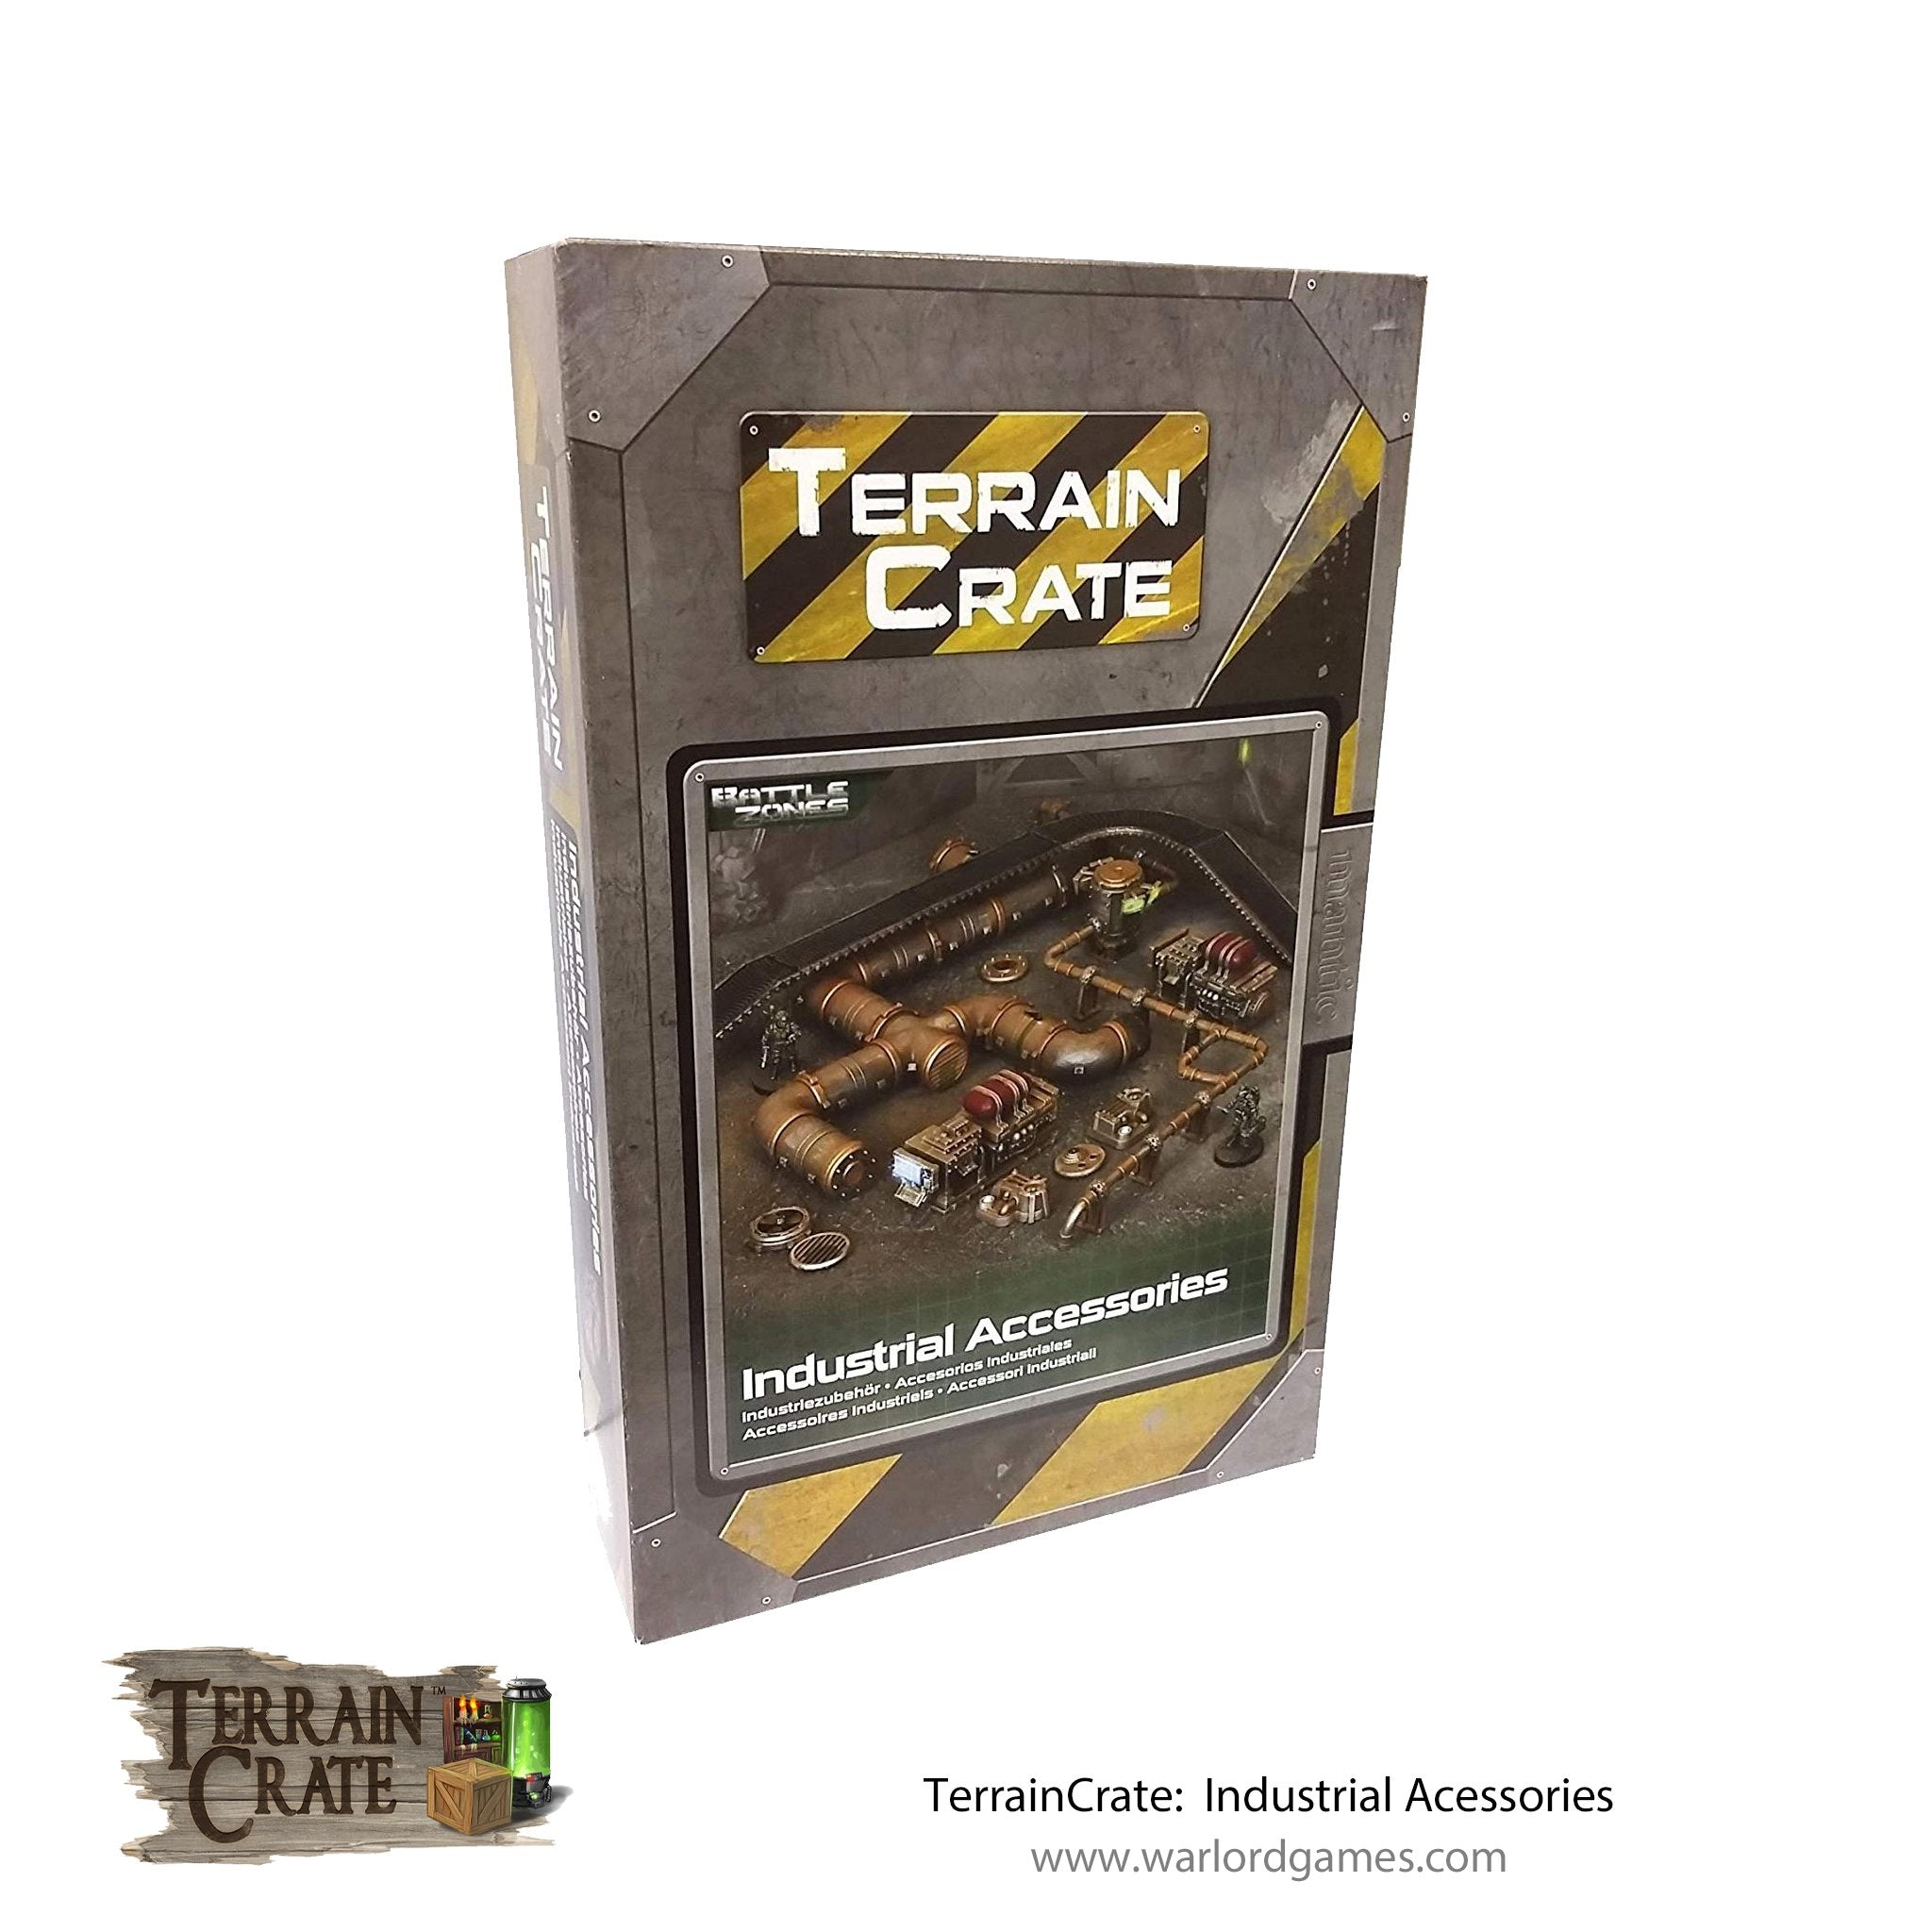 TerrainCrate: Industrial Accessories